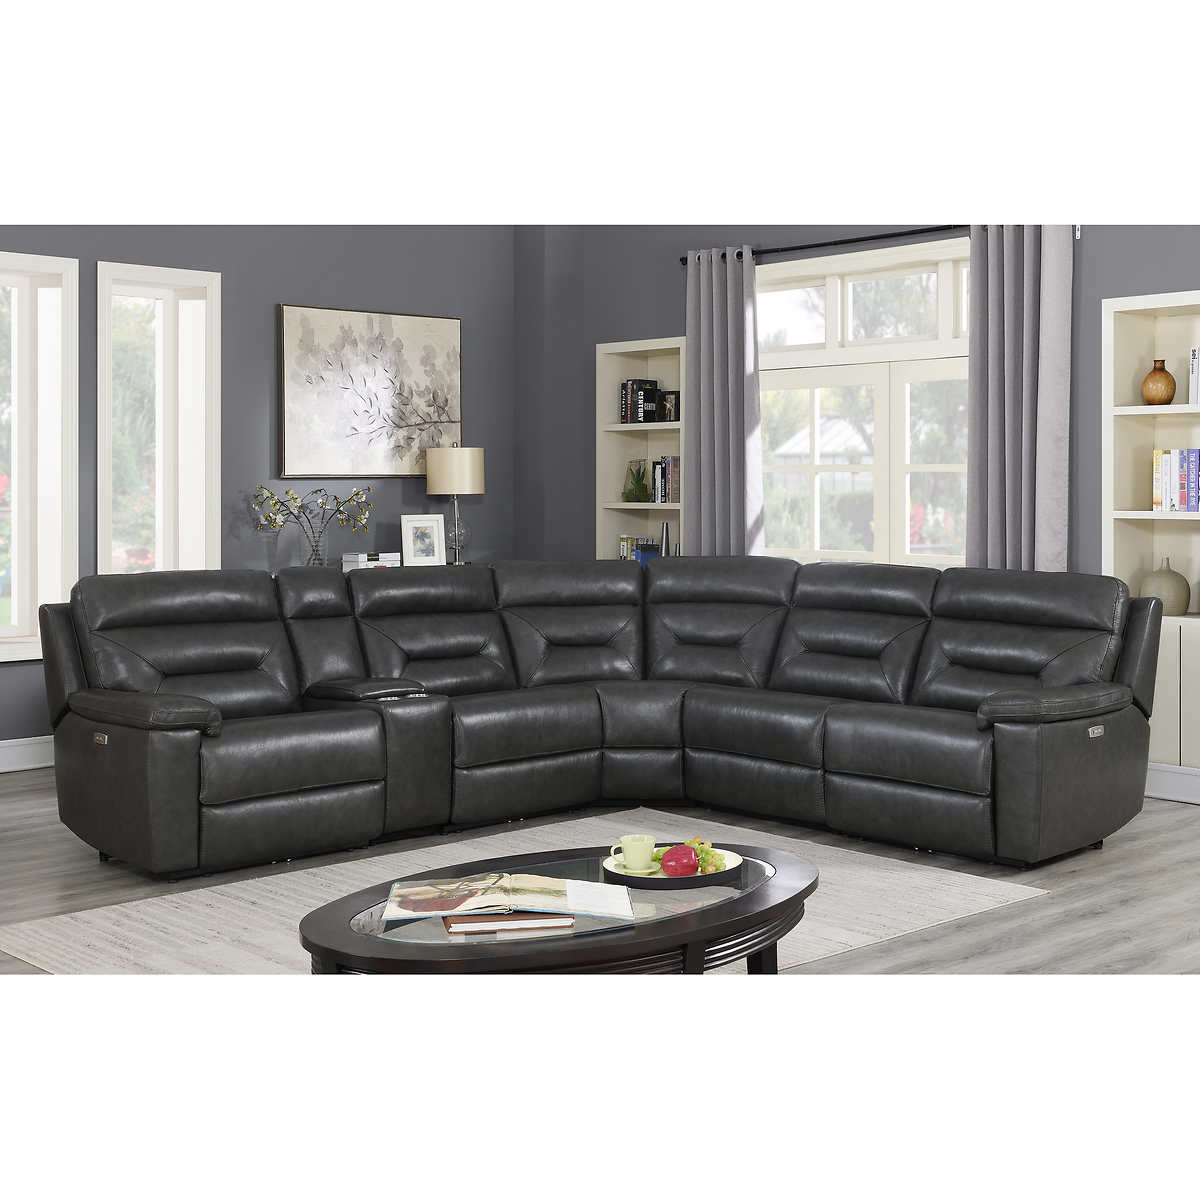 Corry 6 Piece Leather Power Reclining Sectional Sofa Gray